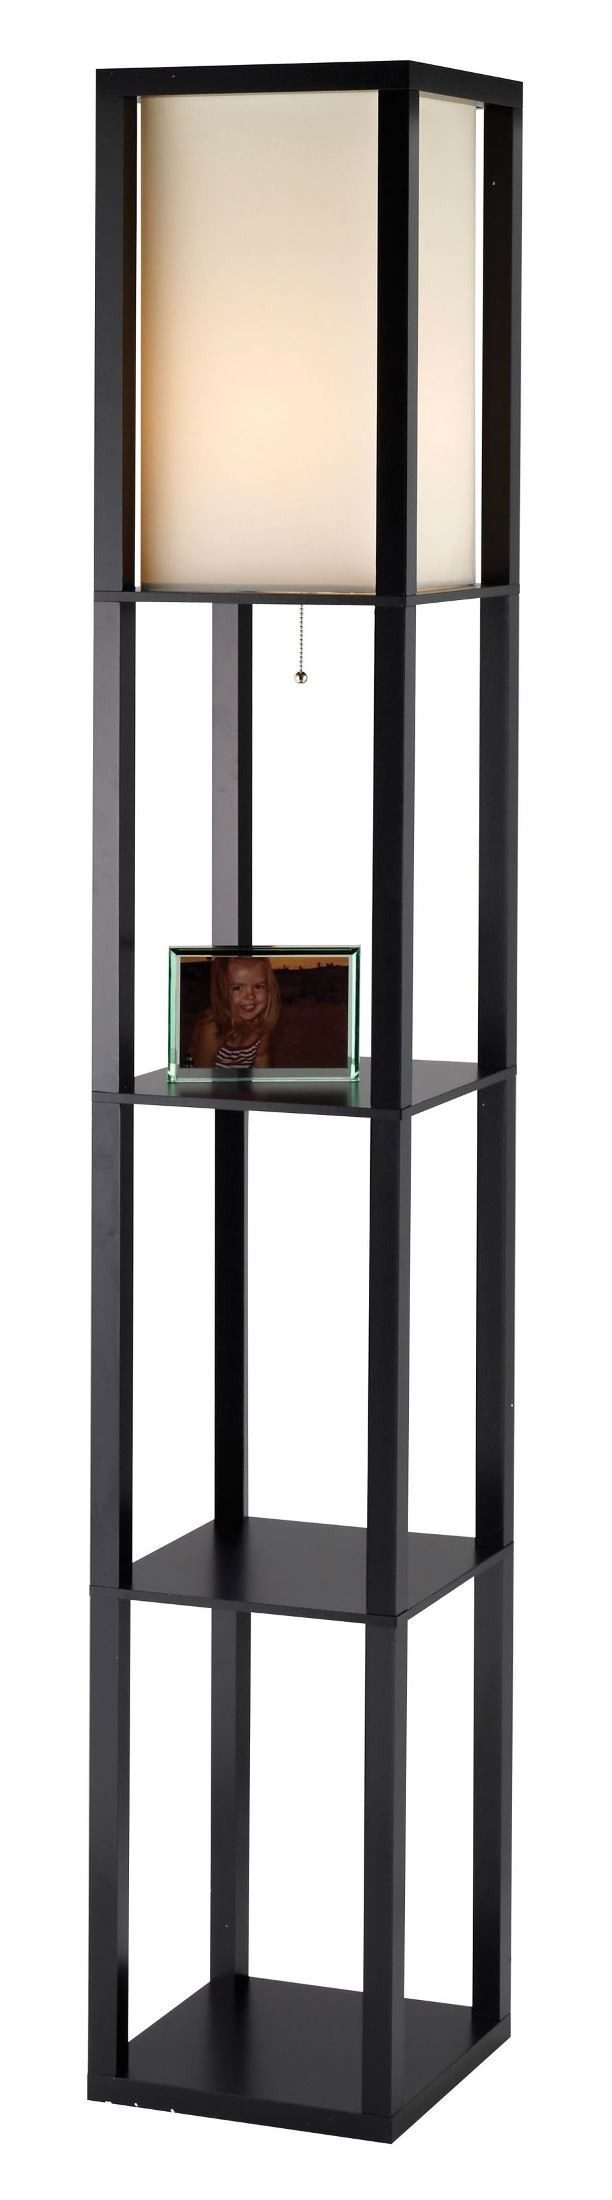 Titan black tall shelf floor lamp from adesso 3193 01 Floor lamp with shelves